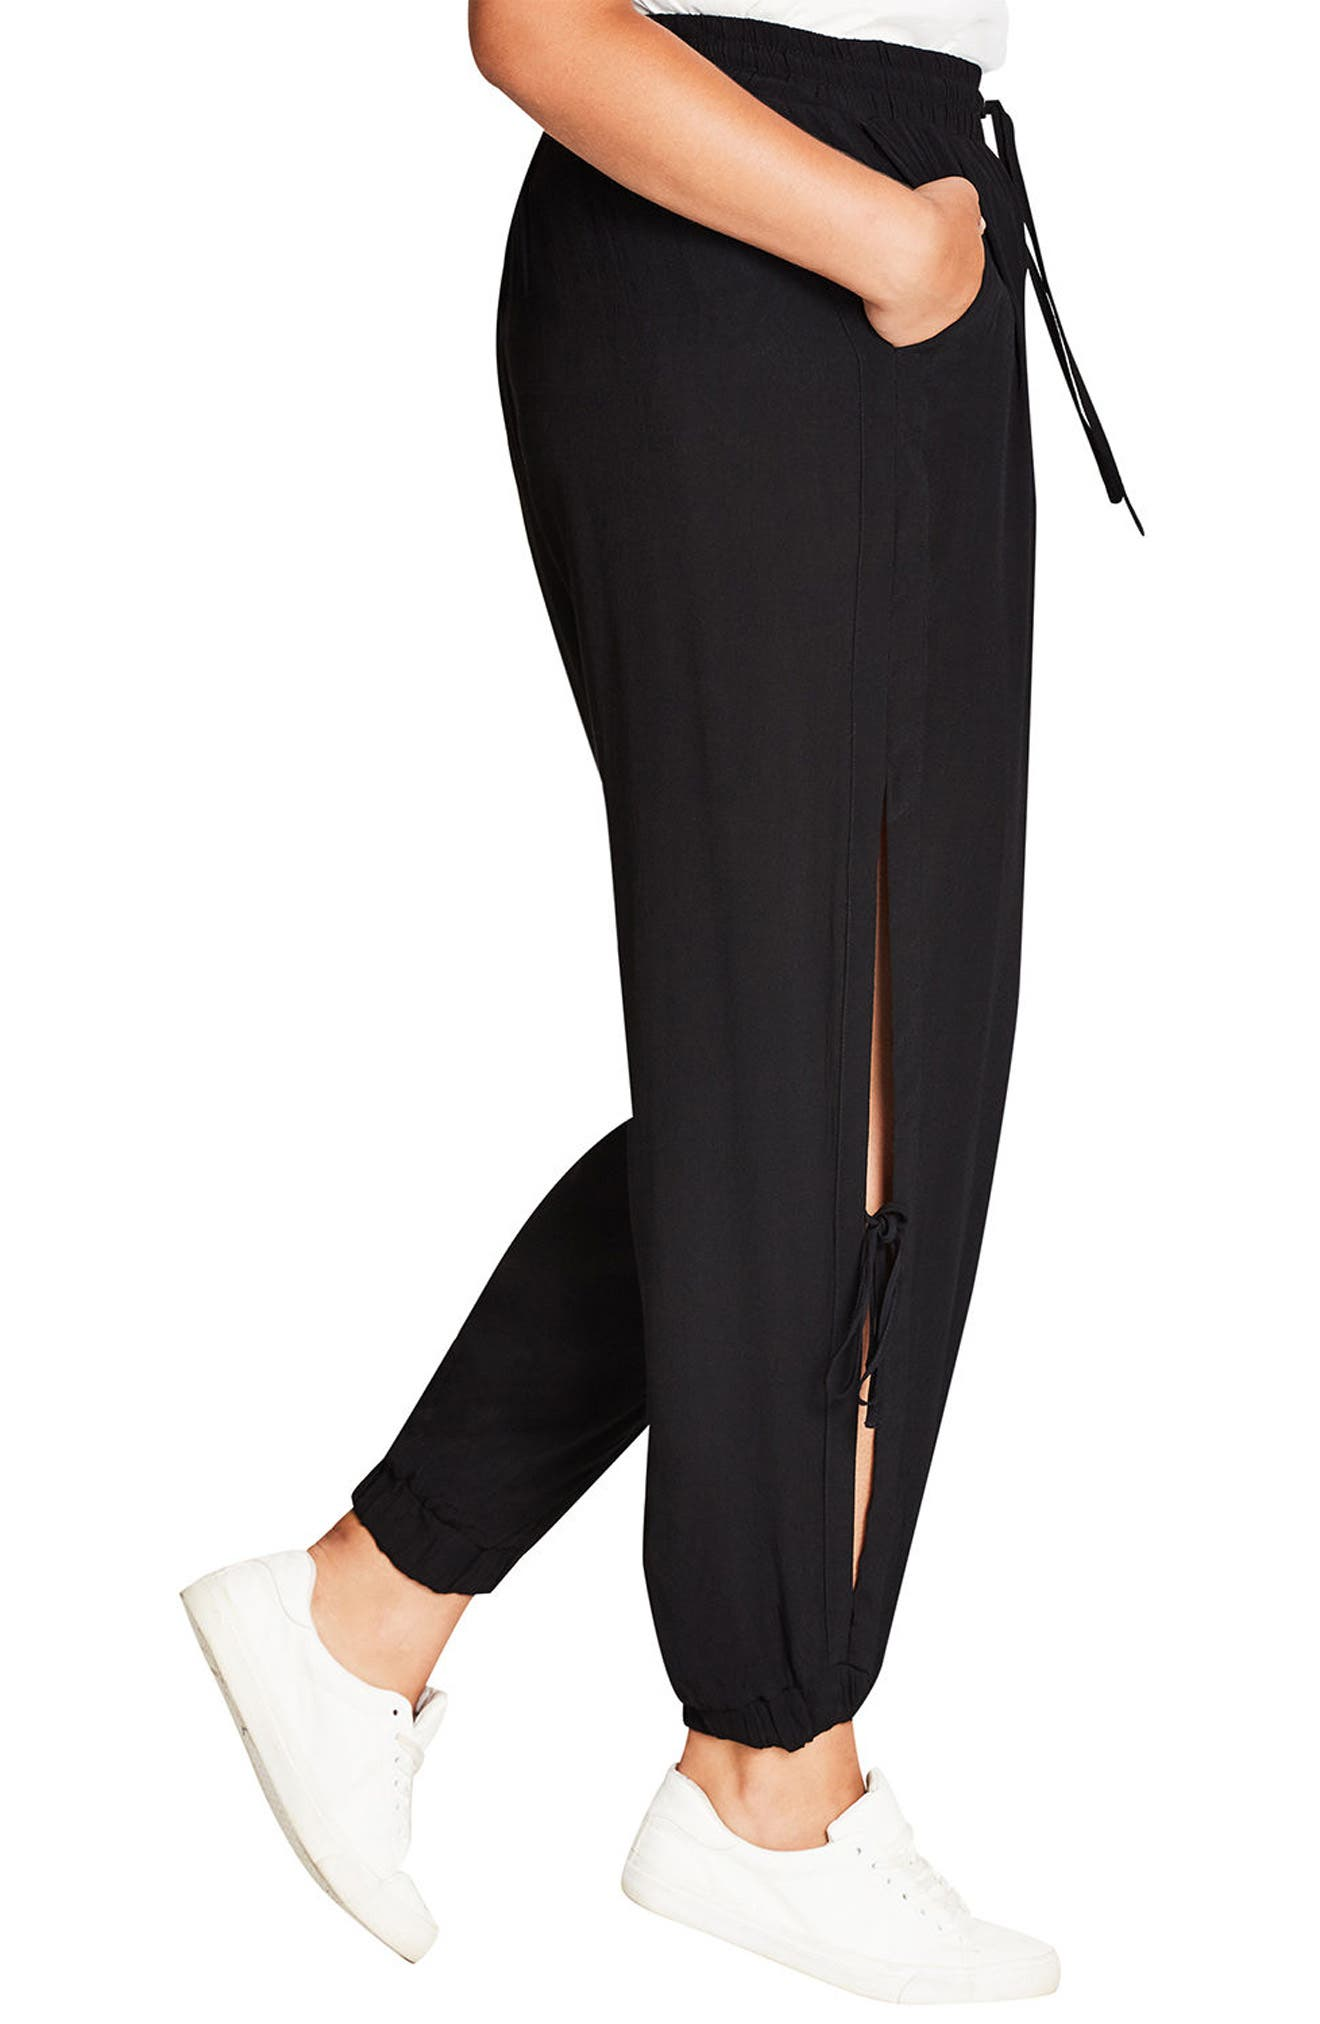 Alternate Image 3  - City Chic Side Tie Jogger Pants (Plus Size)